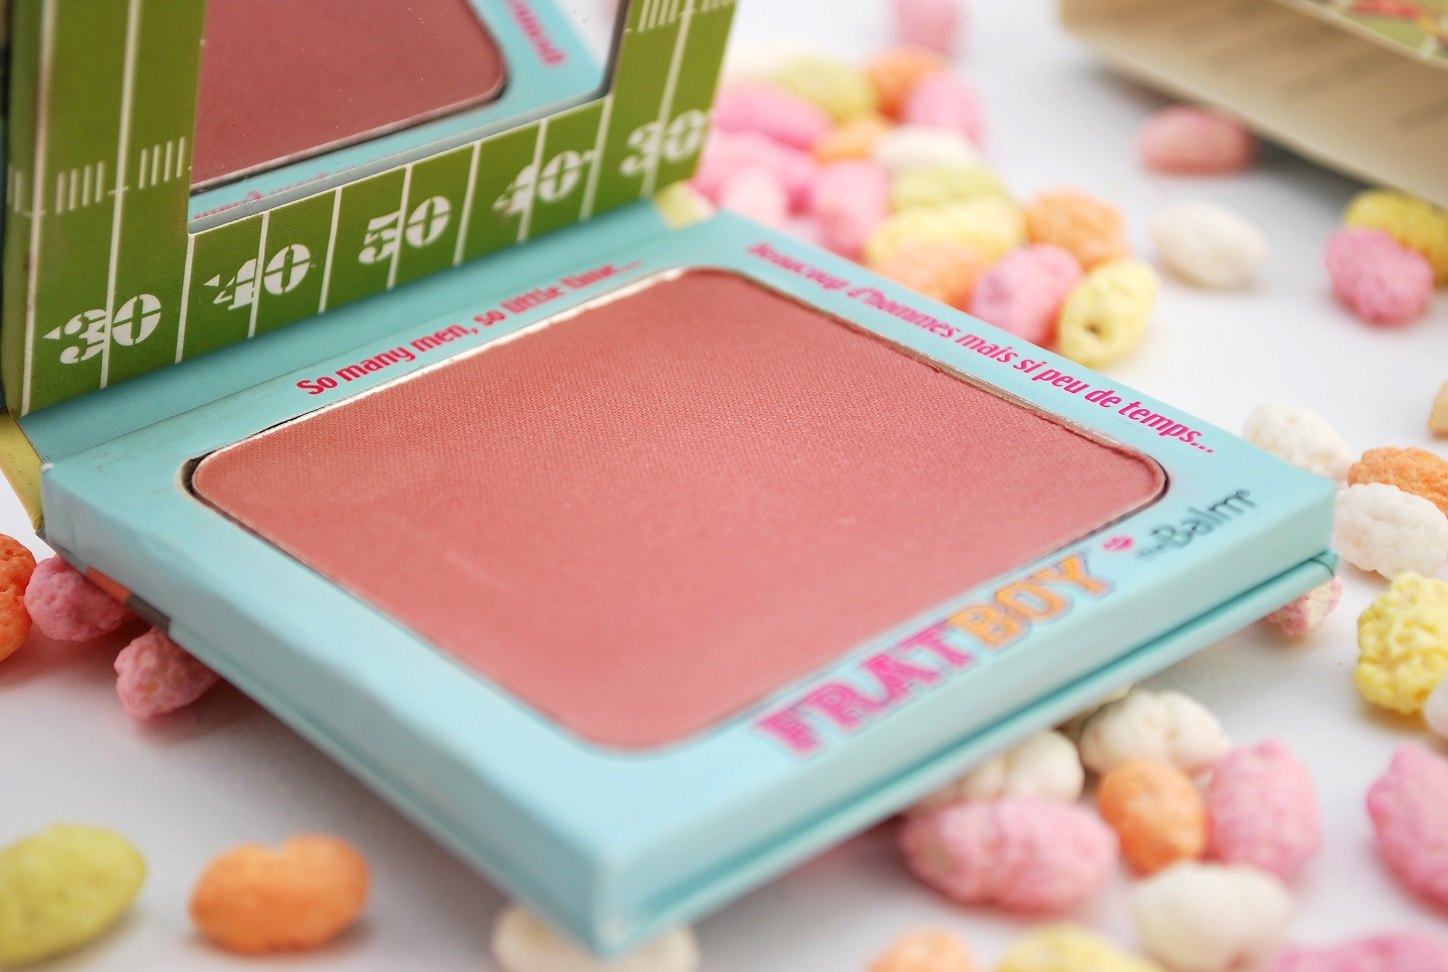 frat boy blush the balm review dupe